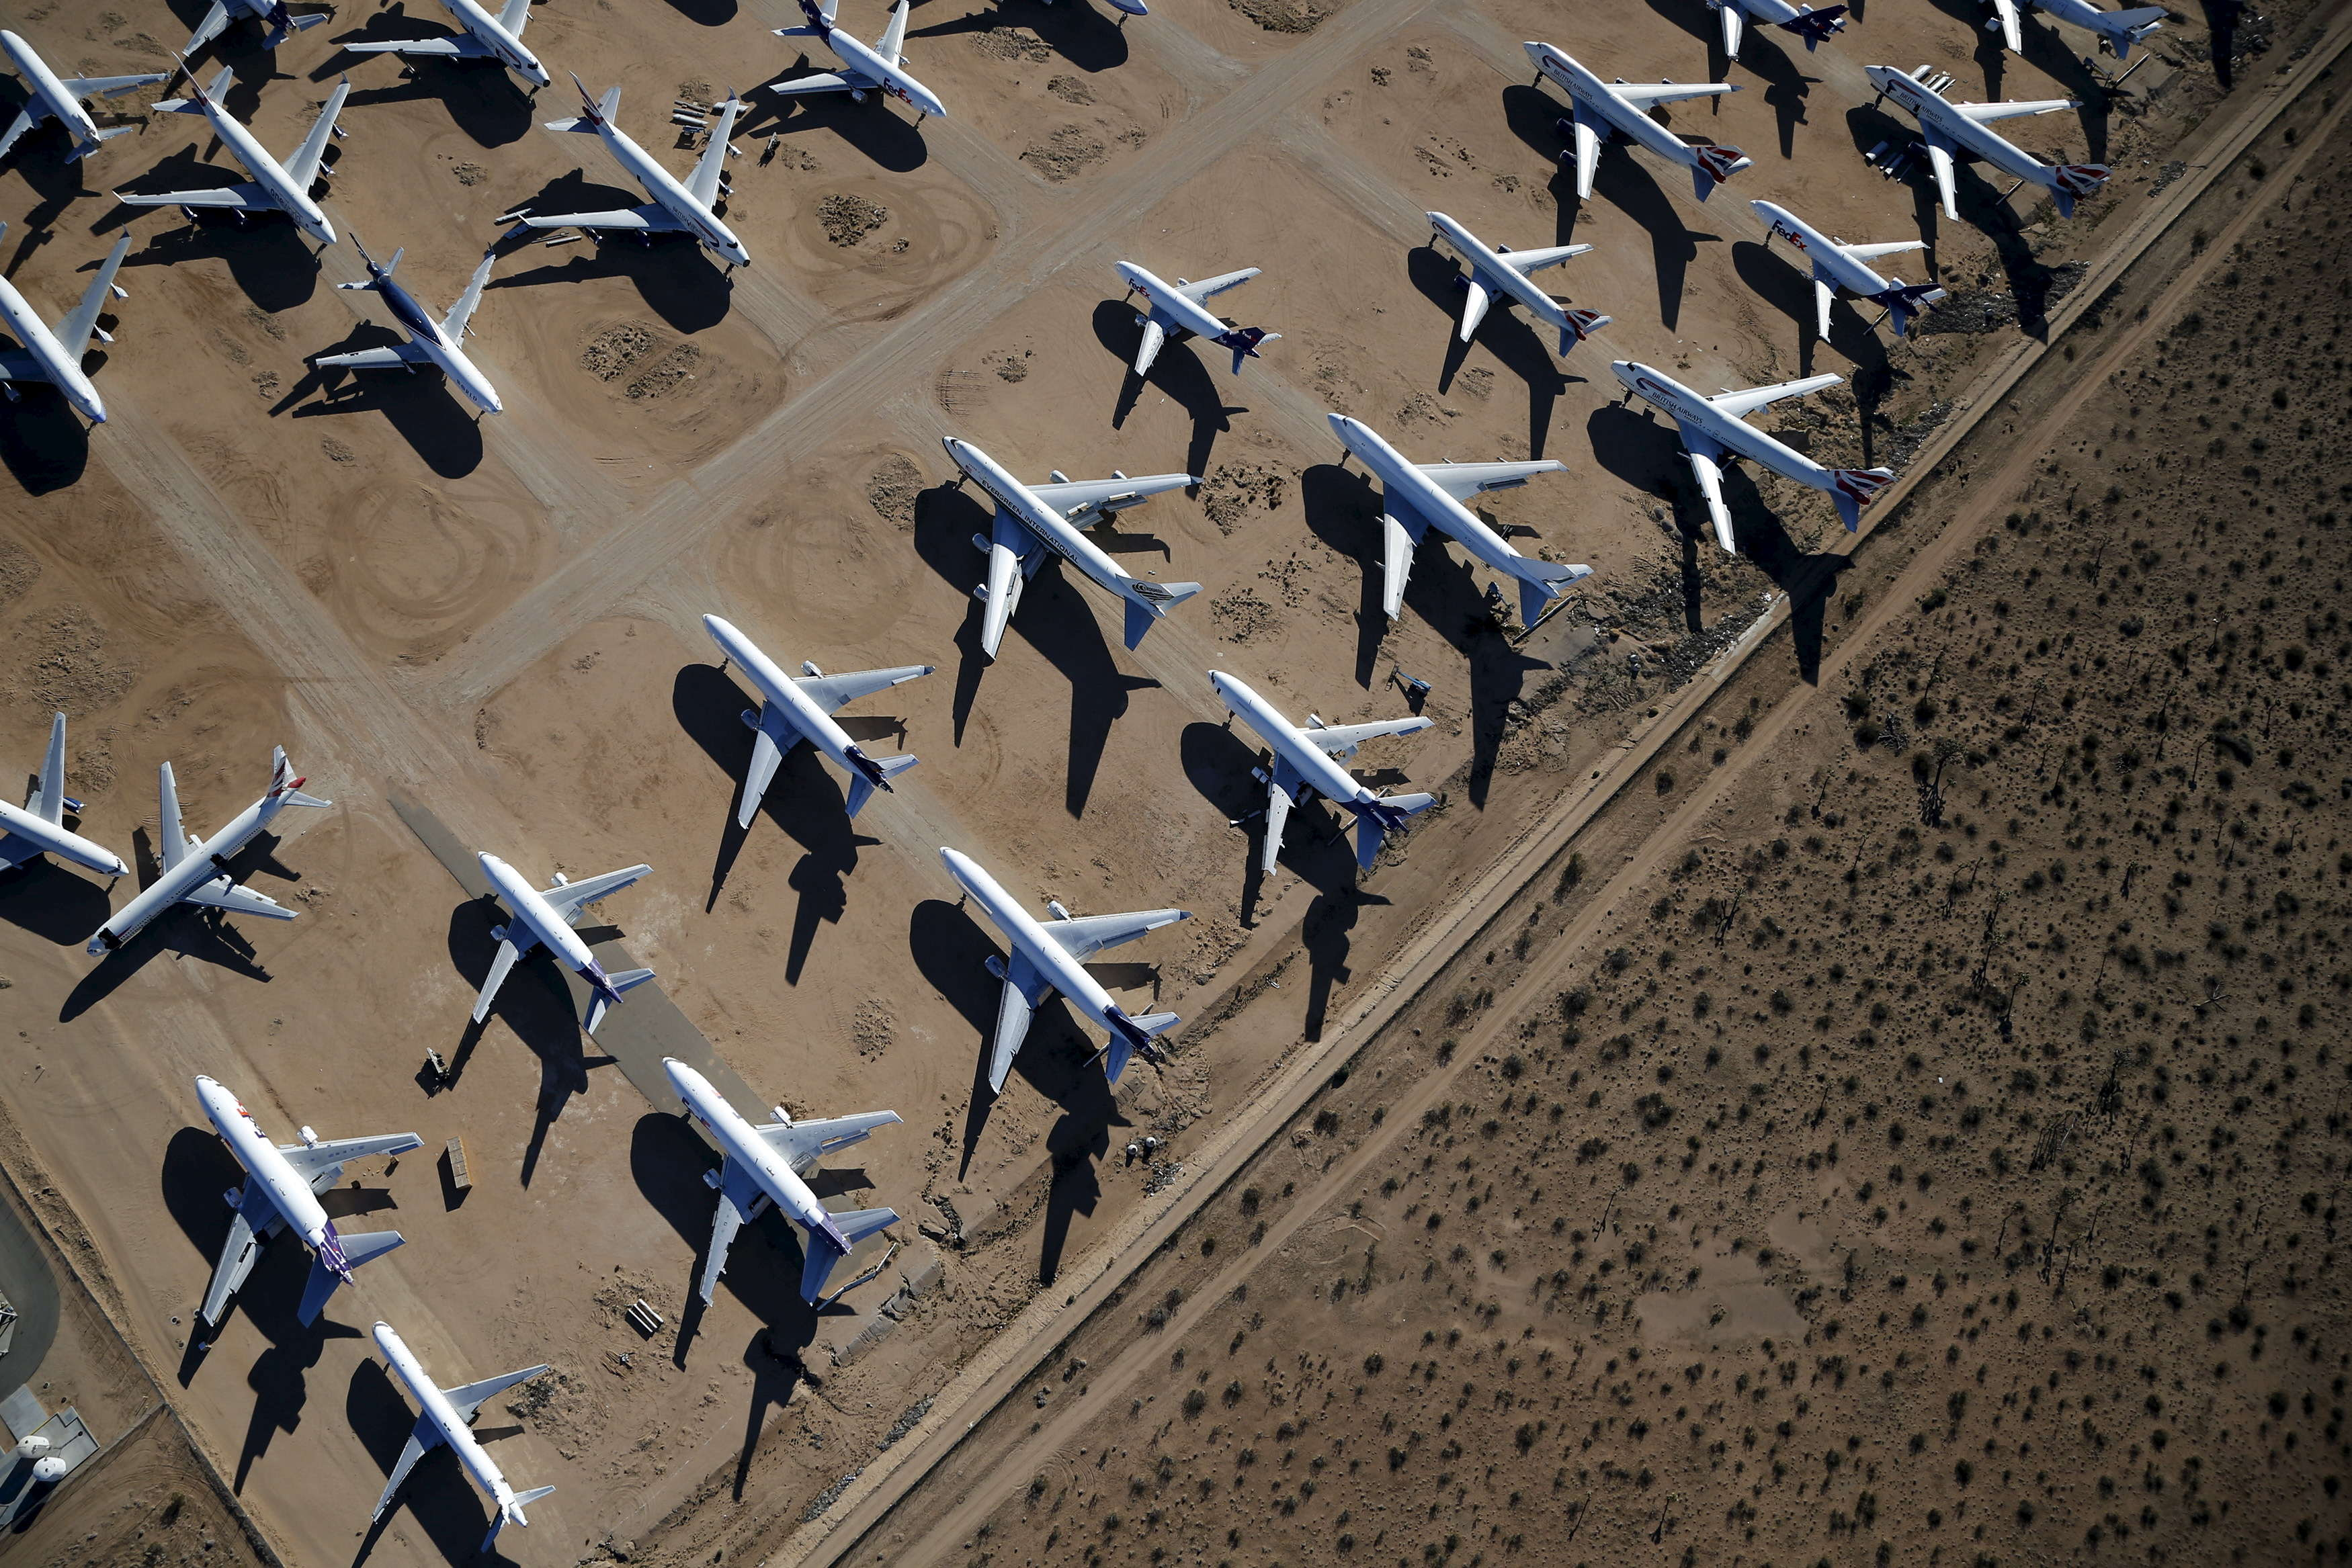 After they arrive, some planes are preserved so they can, one day, return to service with the airline or ...